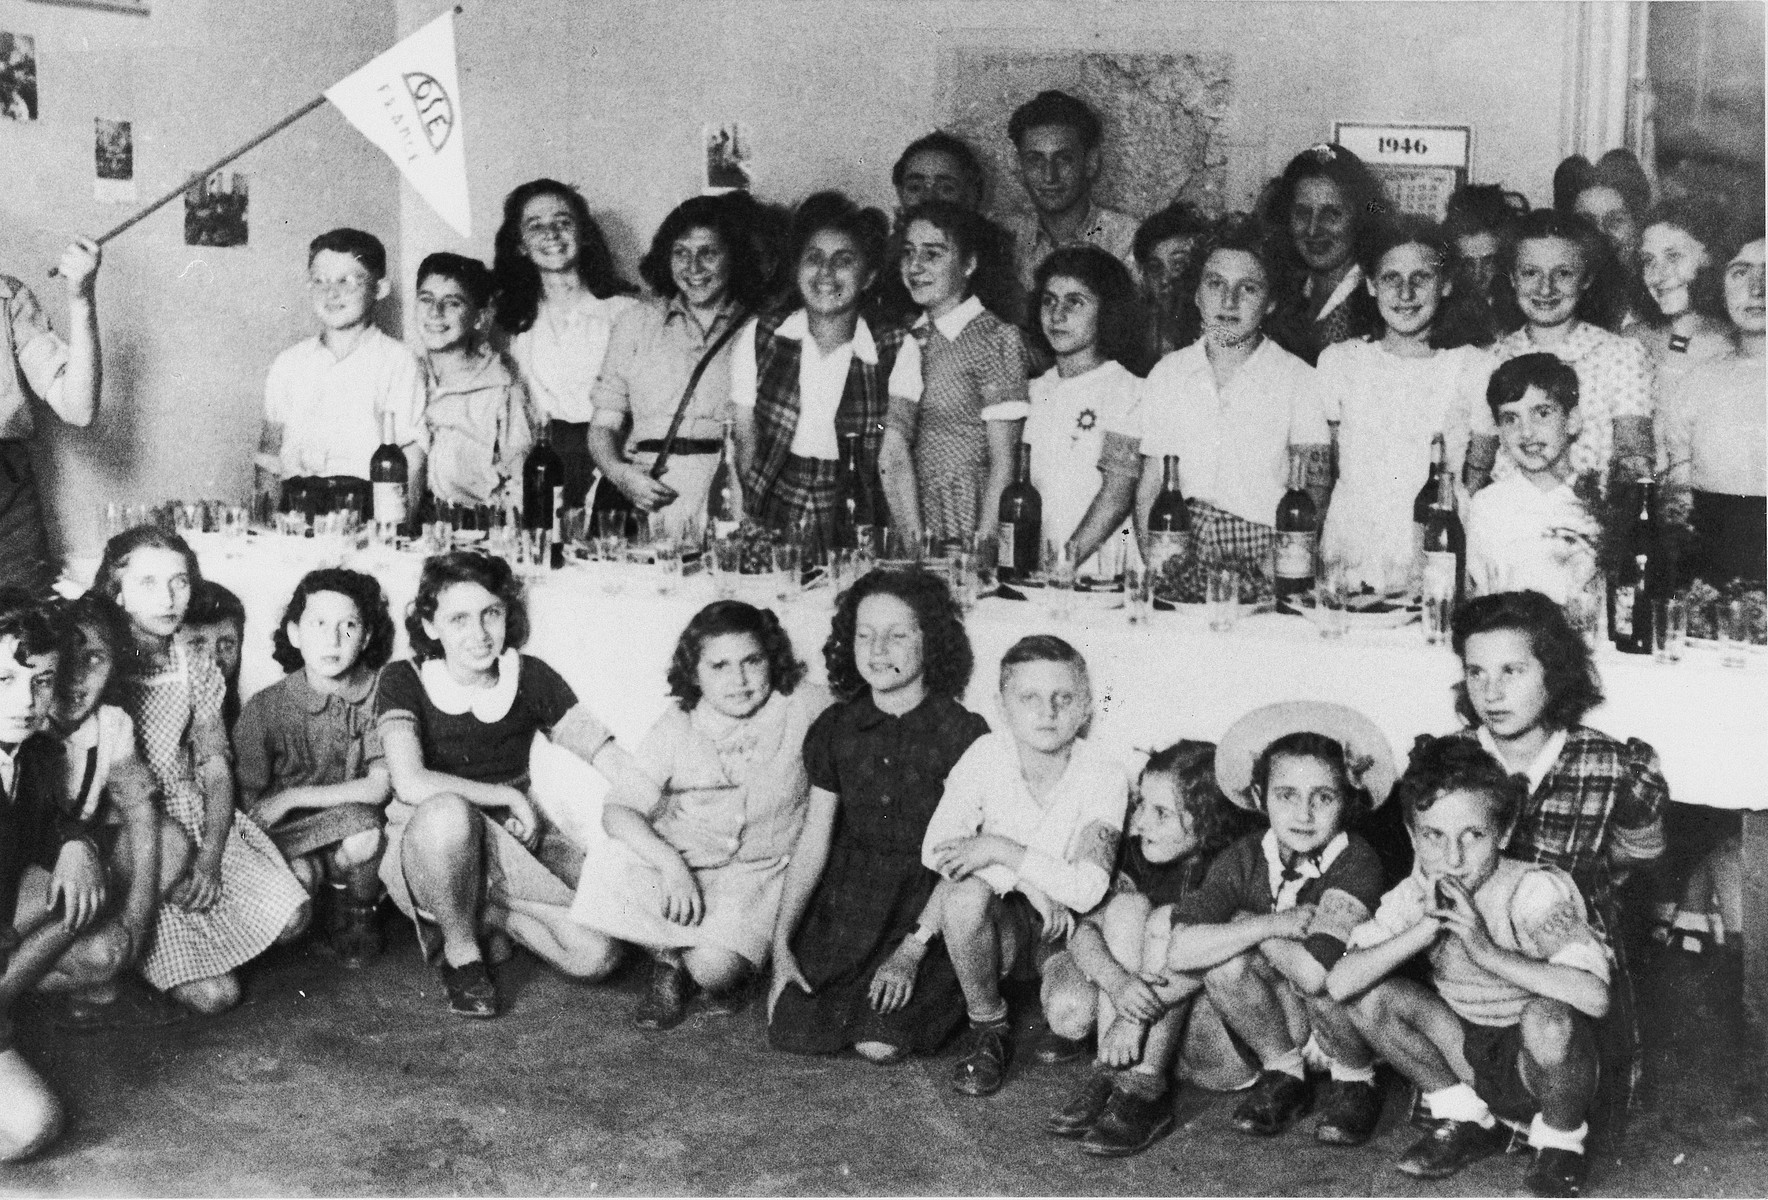 Children gather around a festive table set with wine and wine cups in an OSE home in France.  Among those pictured is former St. Louis passenger, Judith Koeppel.